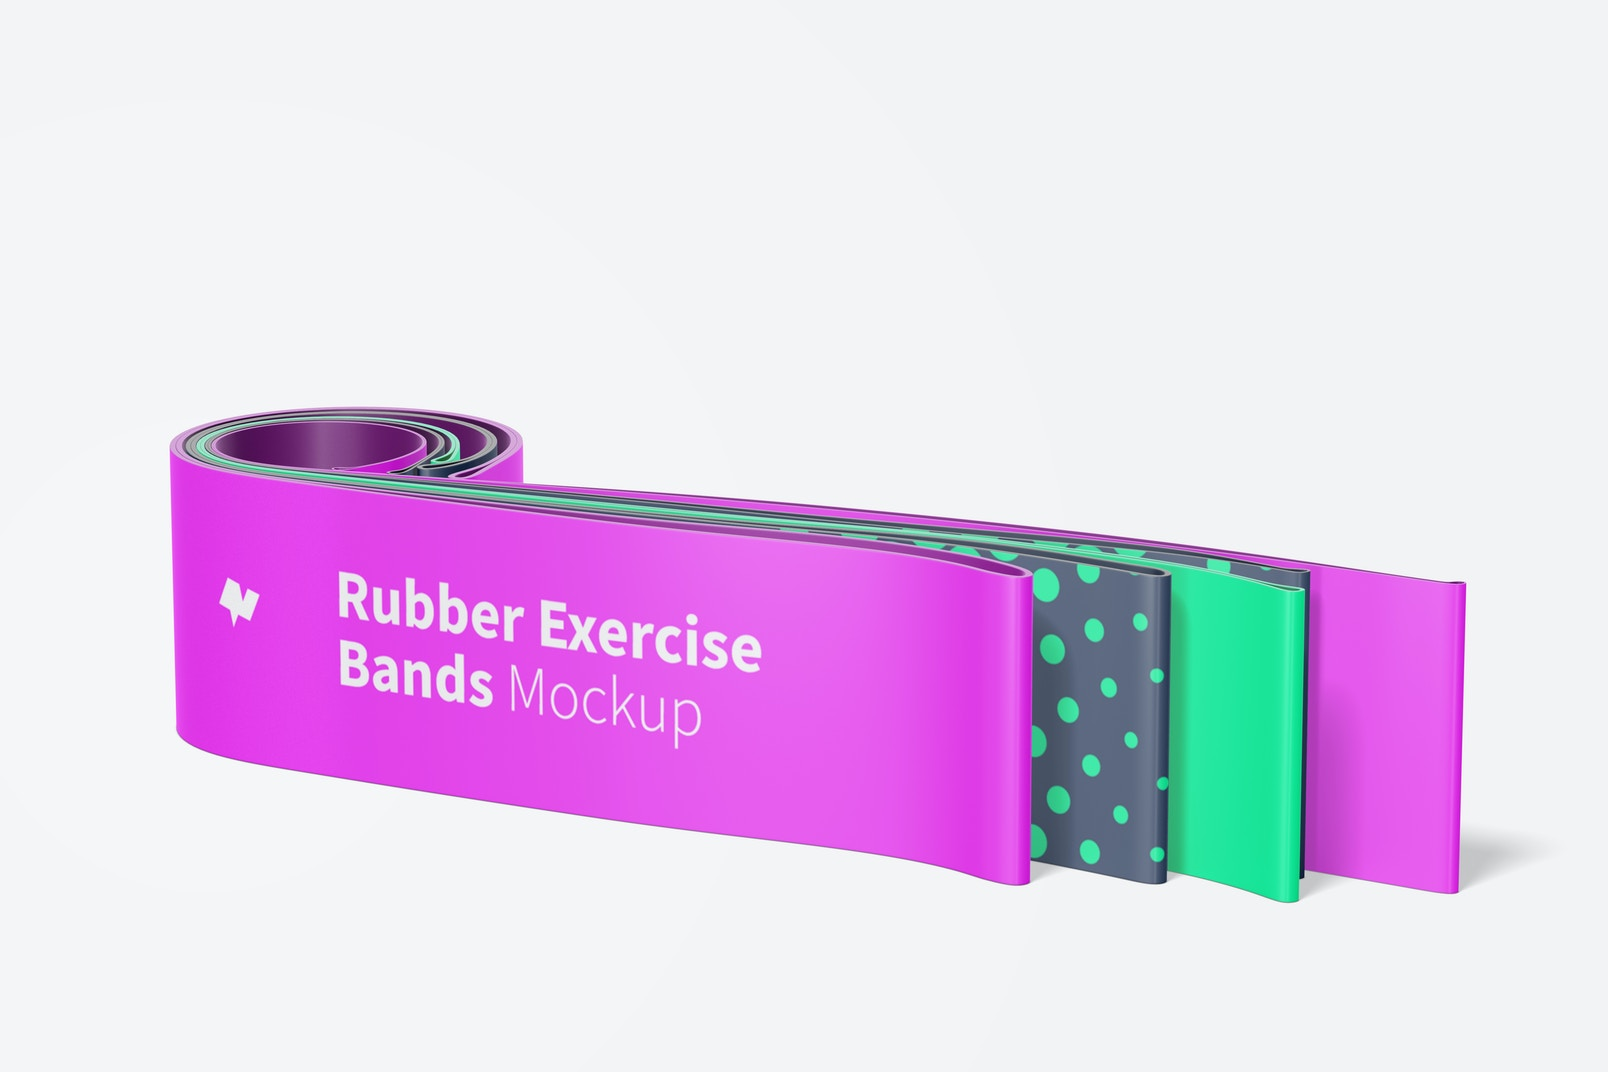 Rubber Exercise Bands Mockup